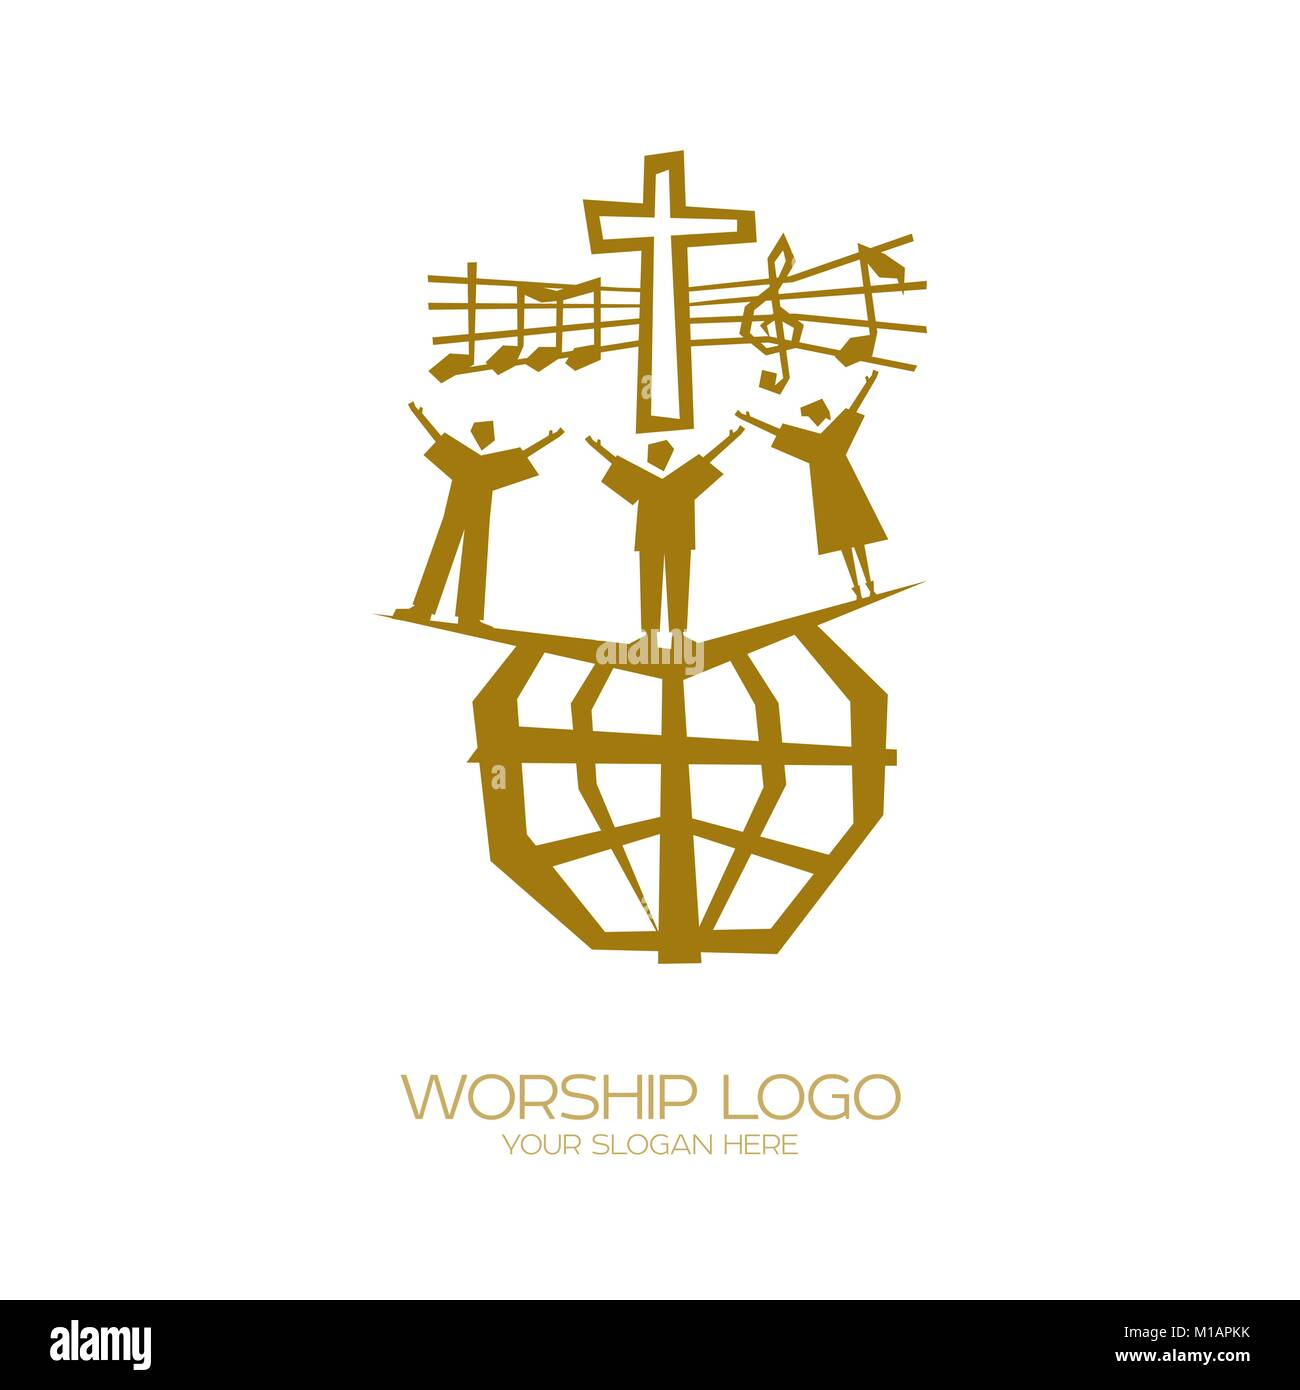 Music Logo Christian Symbols People Of All Nations And Stock